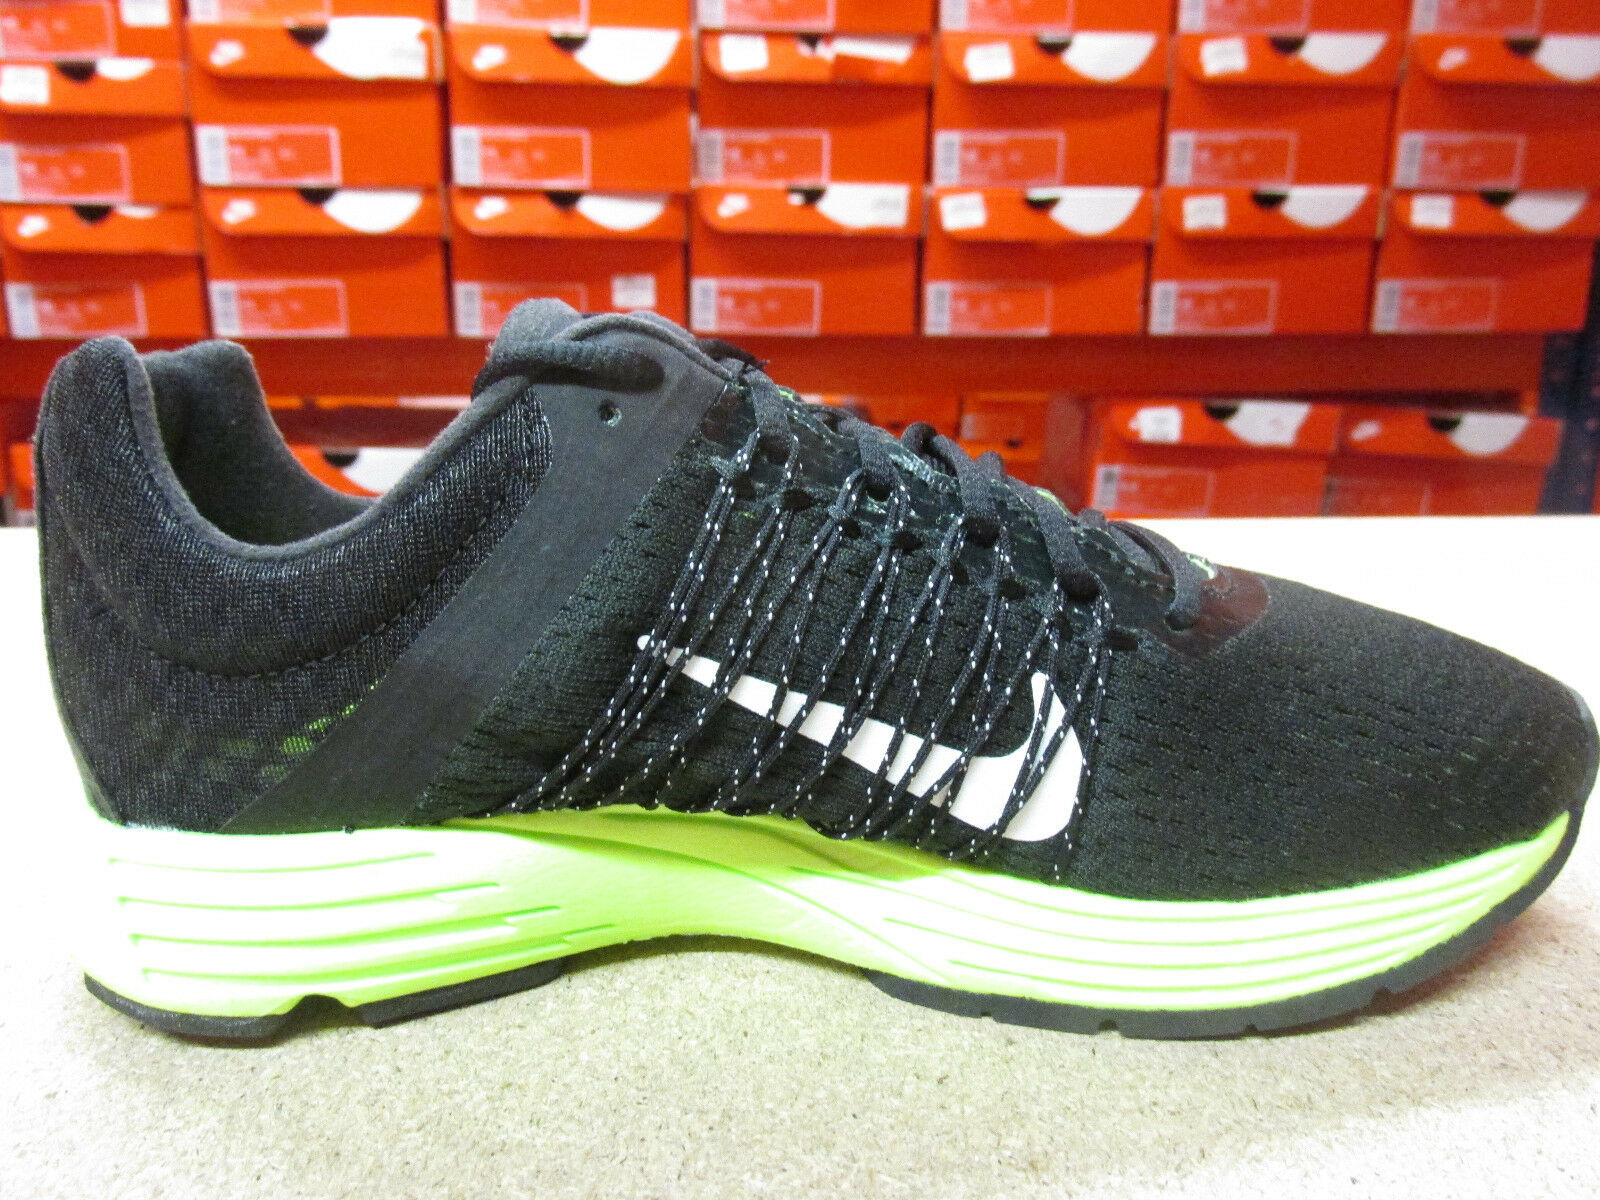 Nike Air Zoom Streak 3 homme fonctionnement Trainers 641318 641318 641318 007 Baskets chaussures 18f621